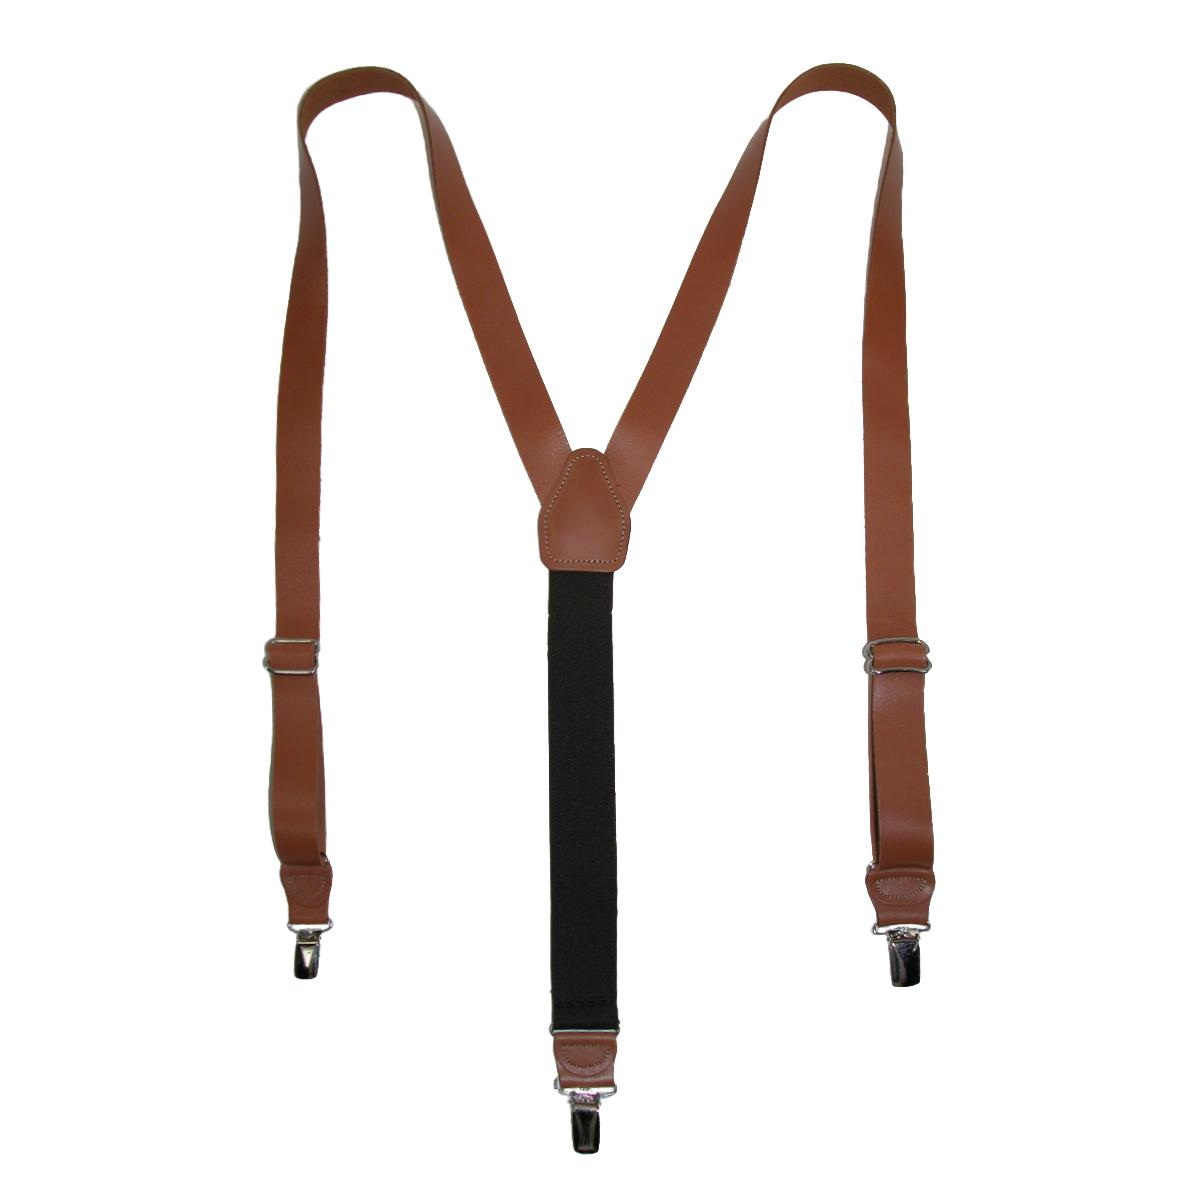 CTM_Mens_Leather_ClipEnd_1_Inch_Suspenders___one_size